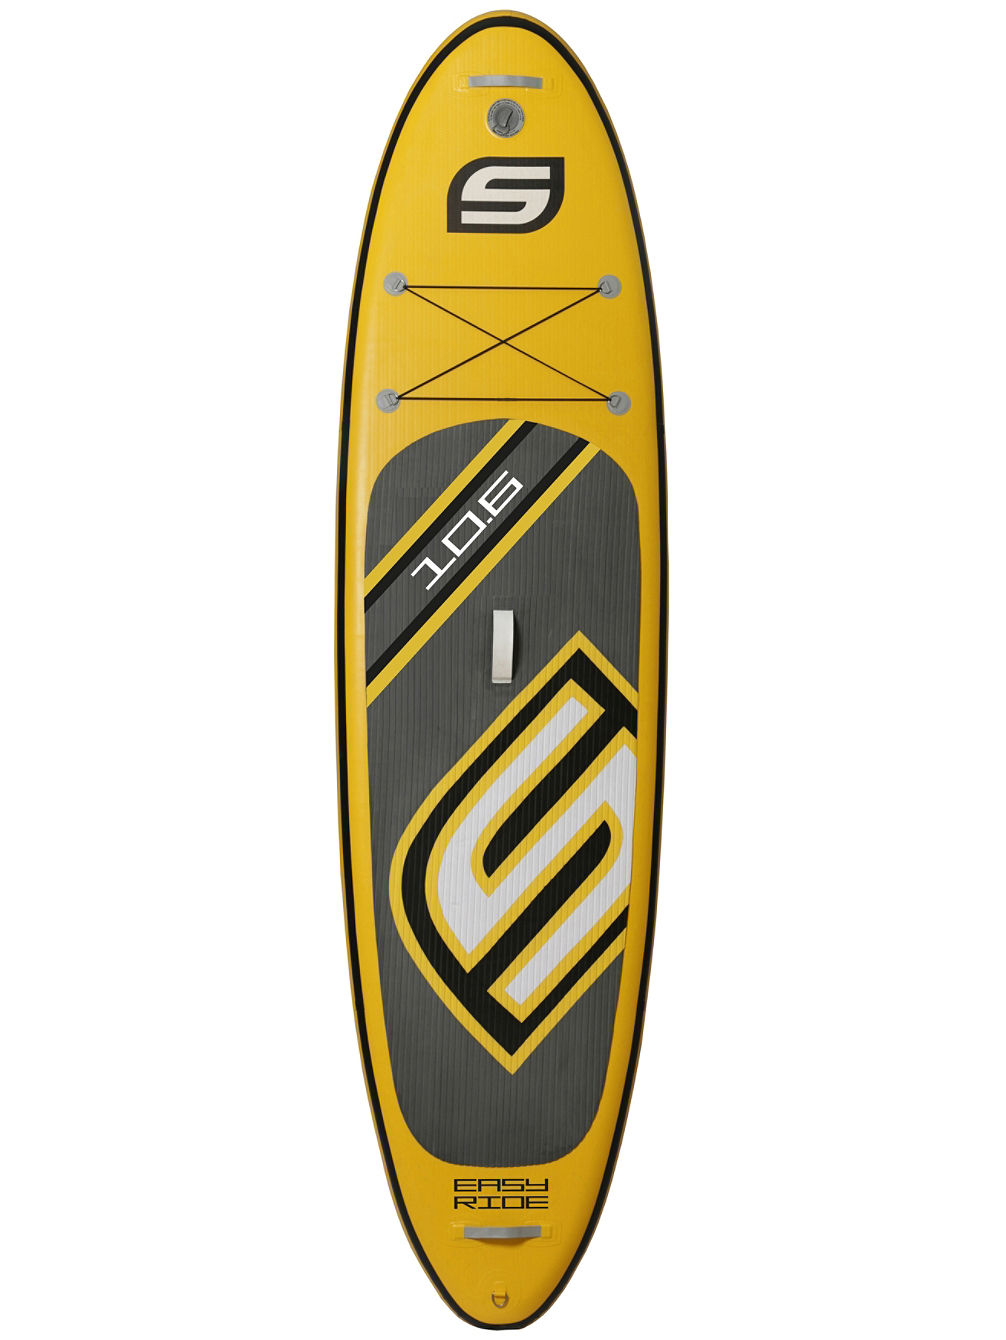 Easy Ride 10.6 SUP Board